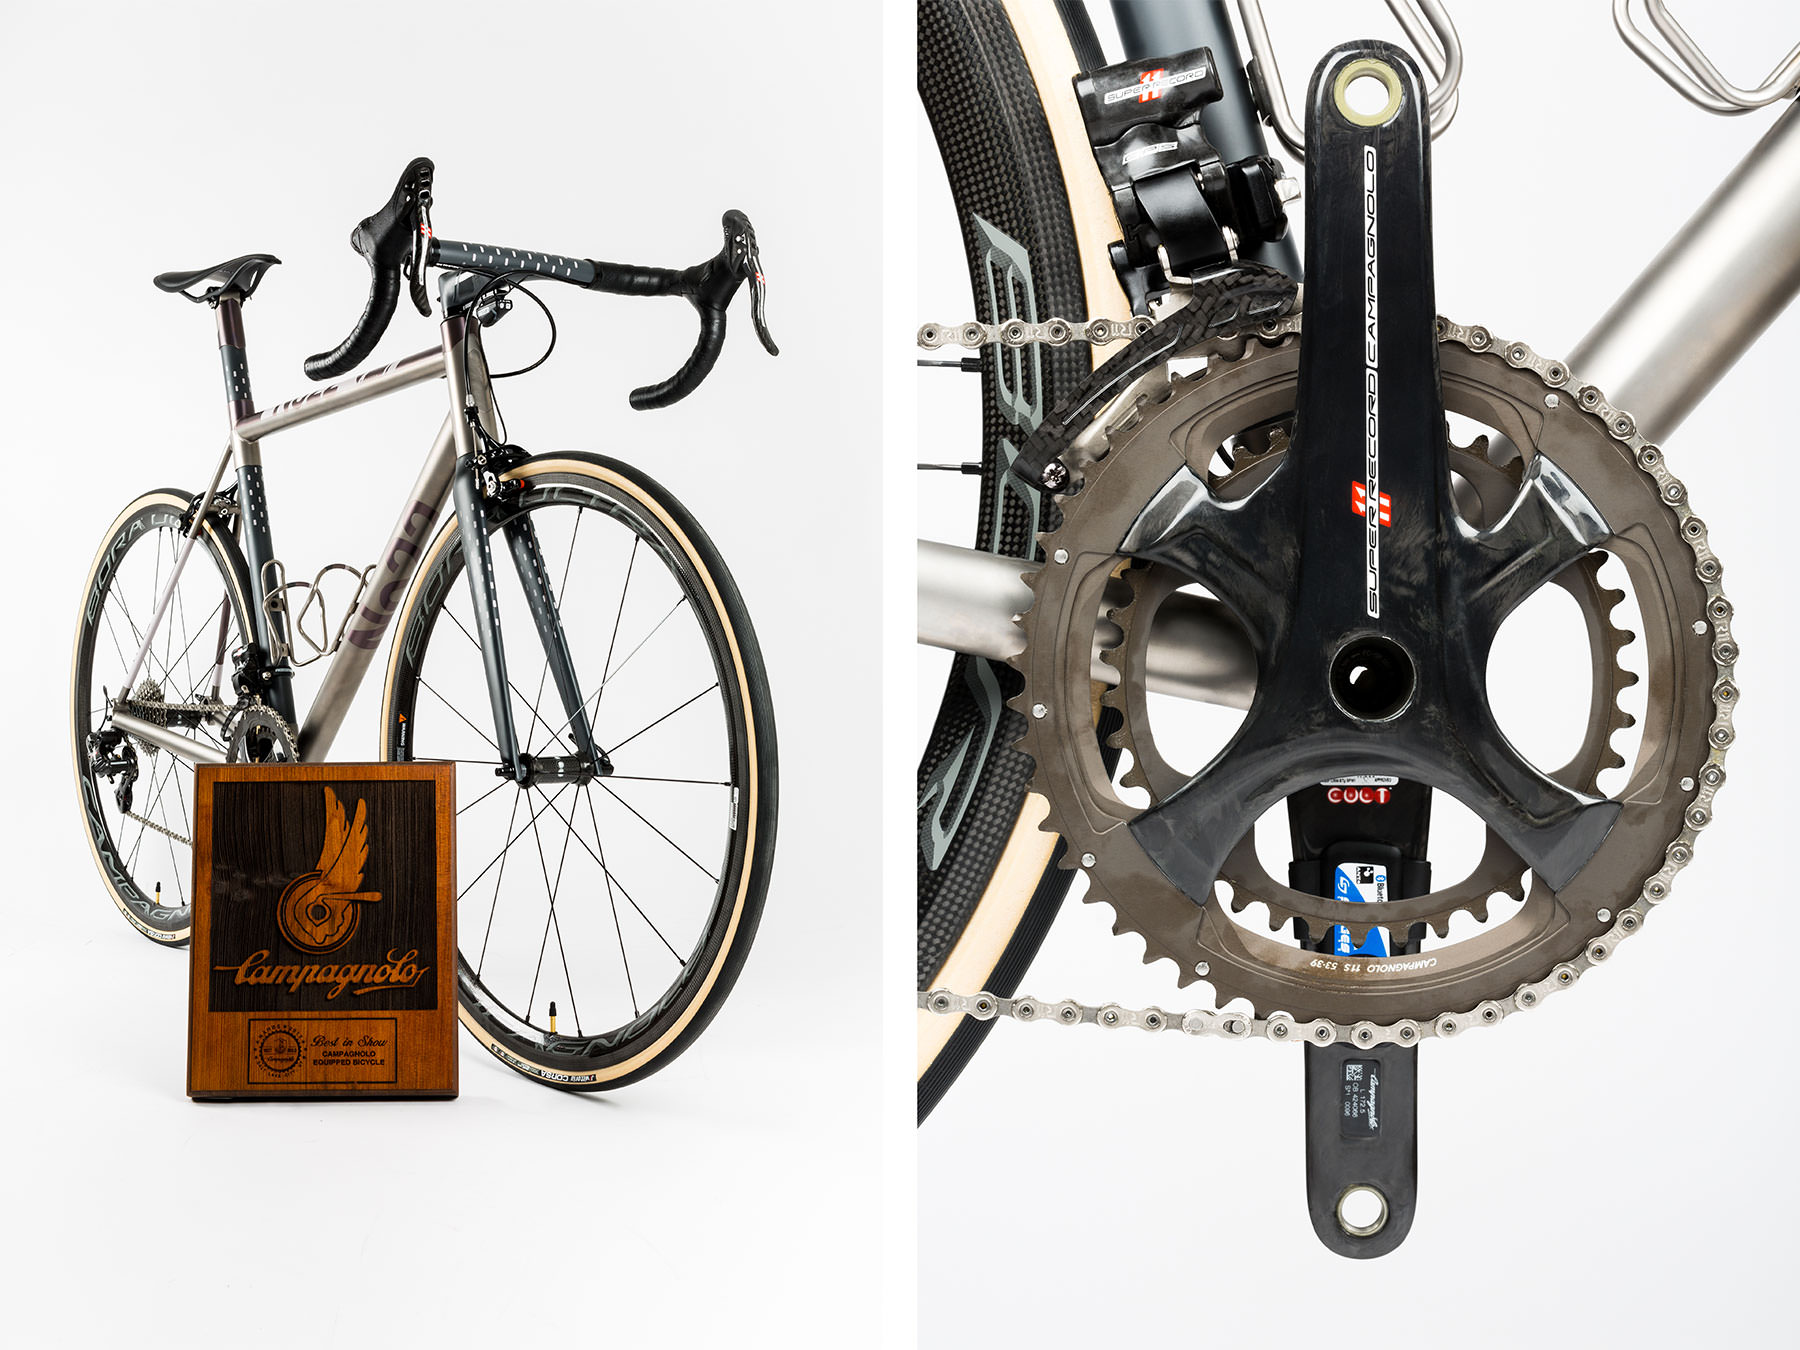 The No. 22 Bicycle Company NAHBS Campagnolo Best in Show Award